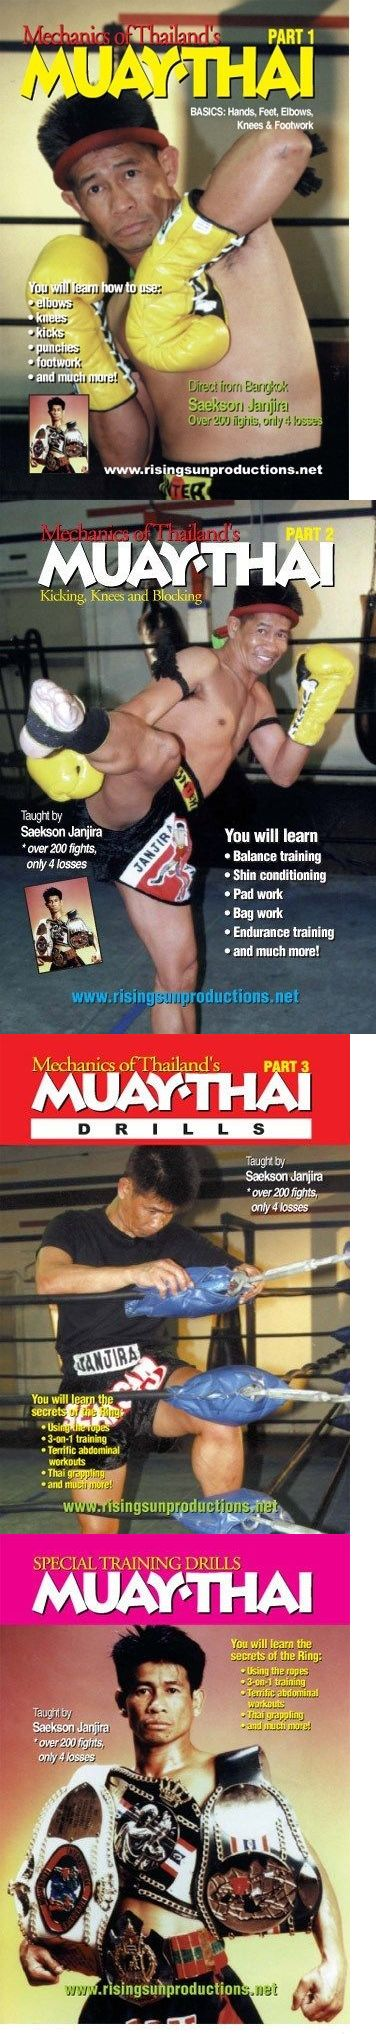 DVDs Videos and Books 73991: 4 Dvd Set Muay Thai Kickboxing Fighting Master Saekson Janjira Hands Feet Combos -> BUY IT NOW ONLY: $85 on eBay!